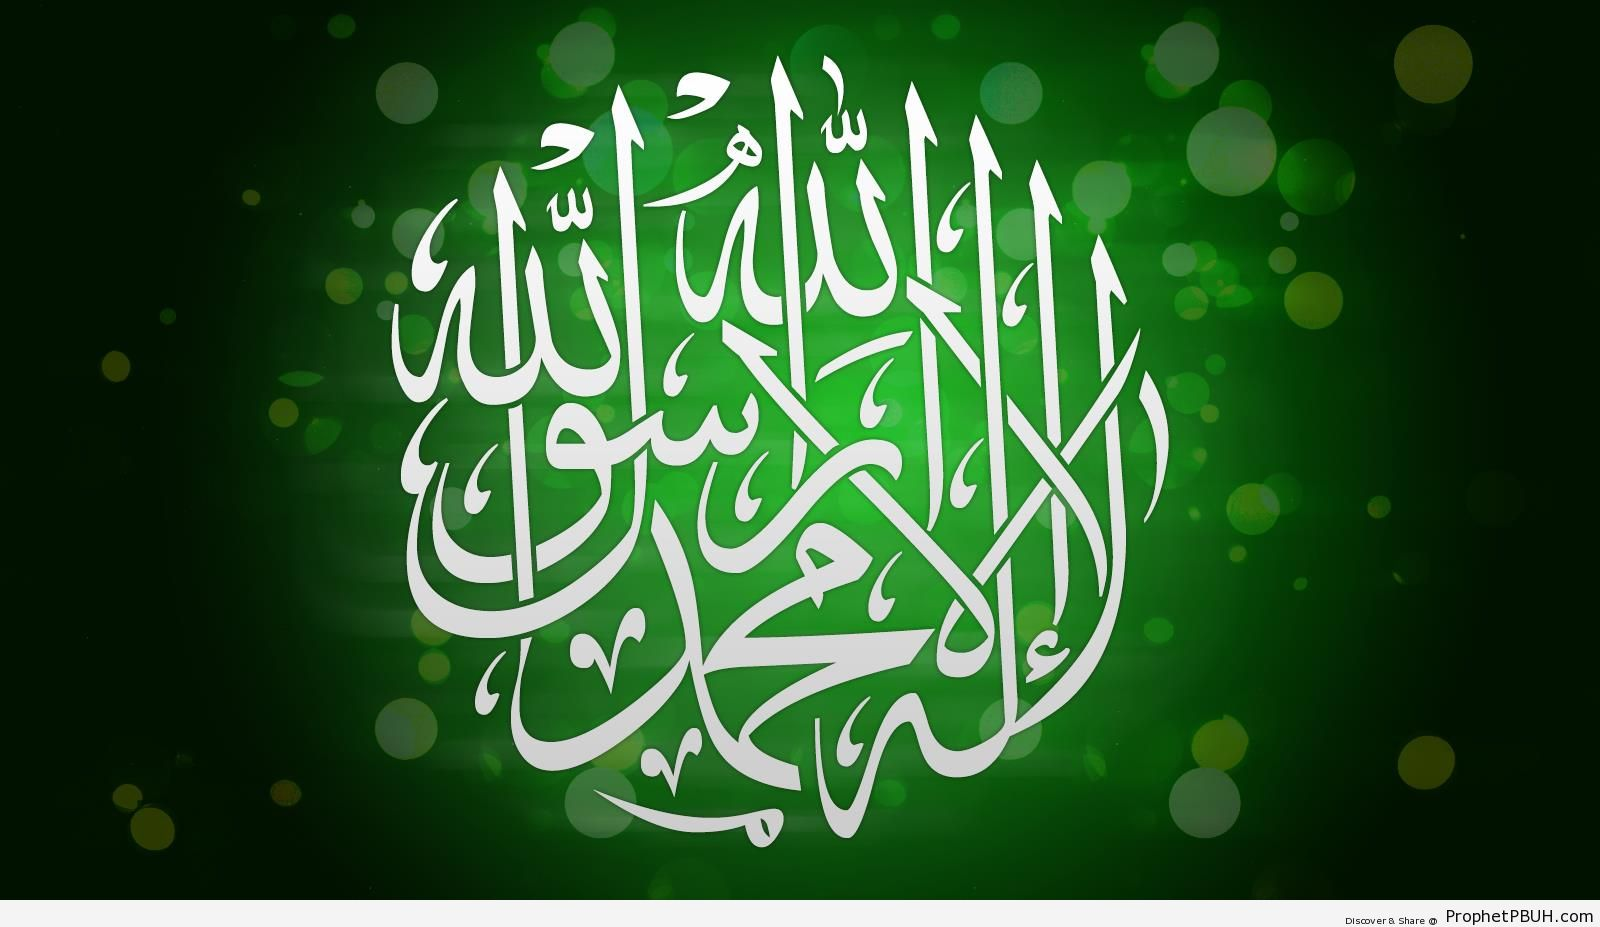 Shahadah Calligraphy Wallpaper on Green Glow - Islamic 1600 x 900 Wallpapers